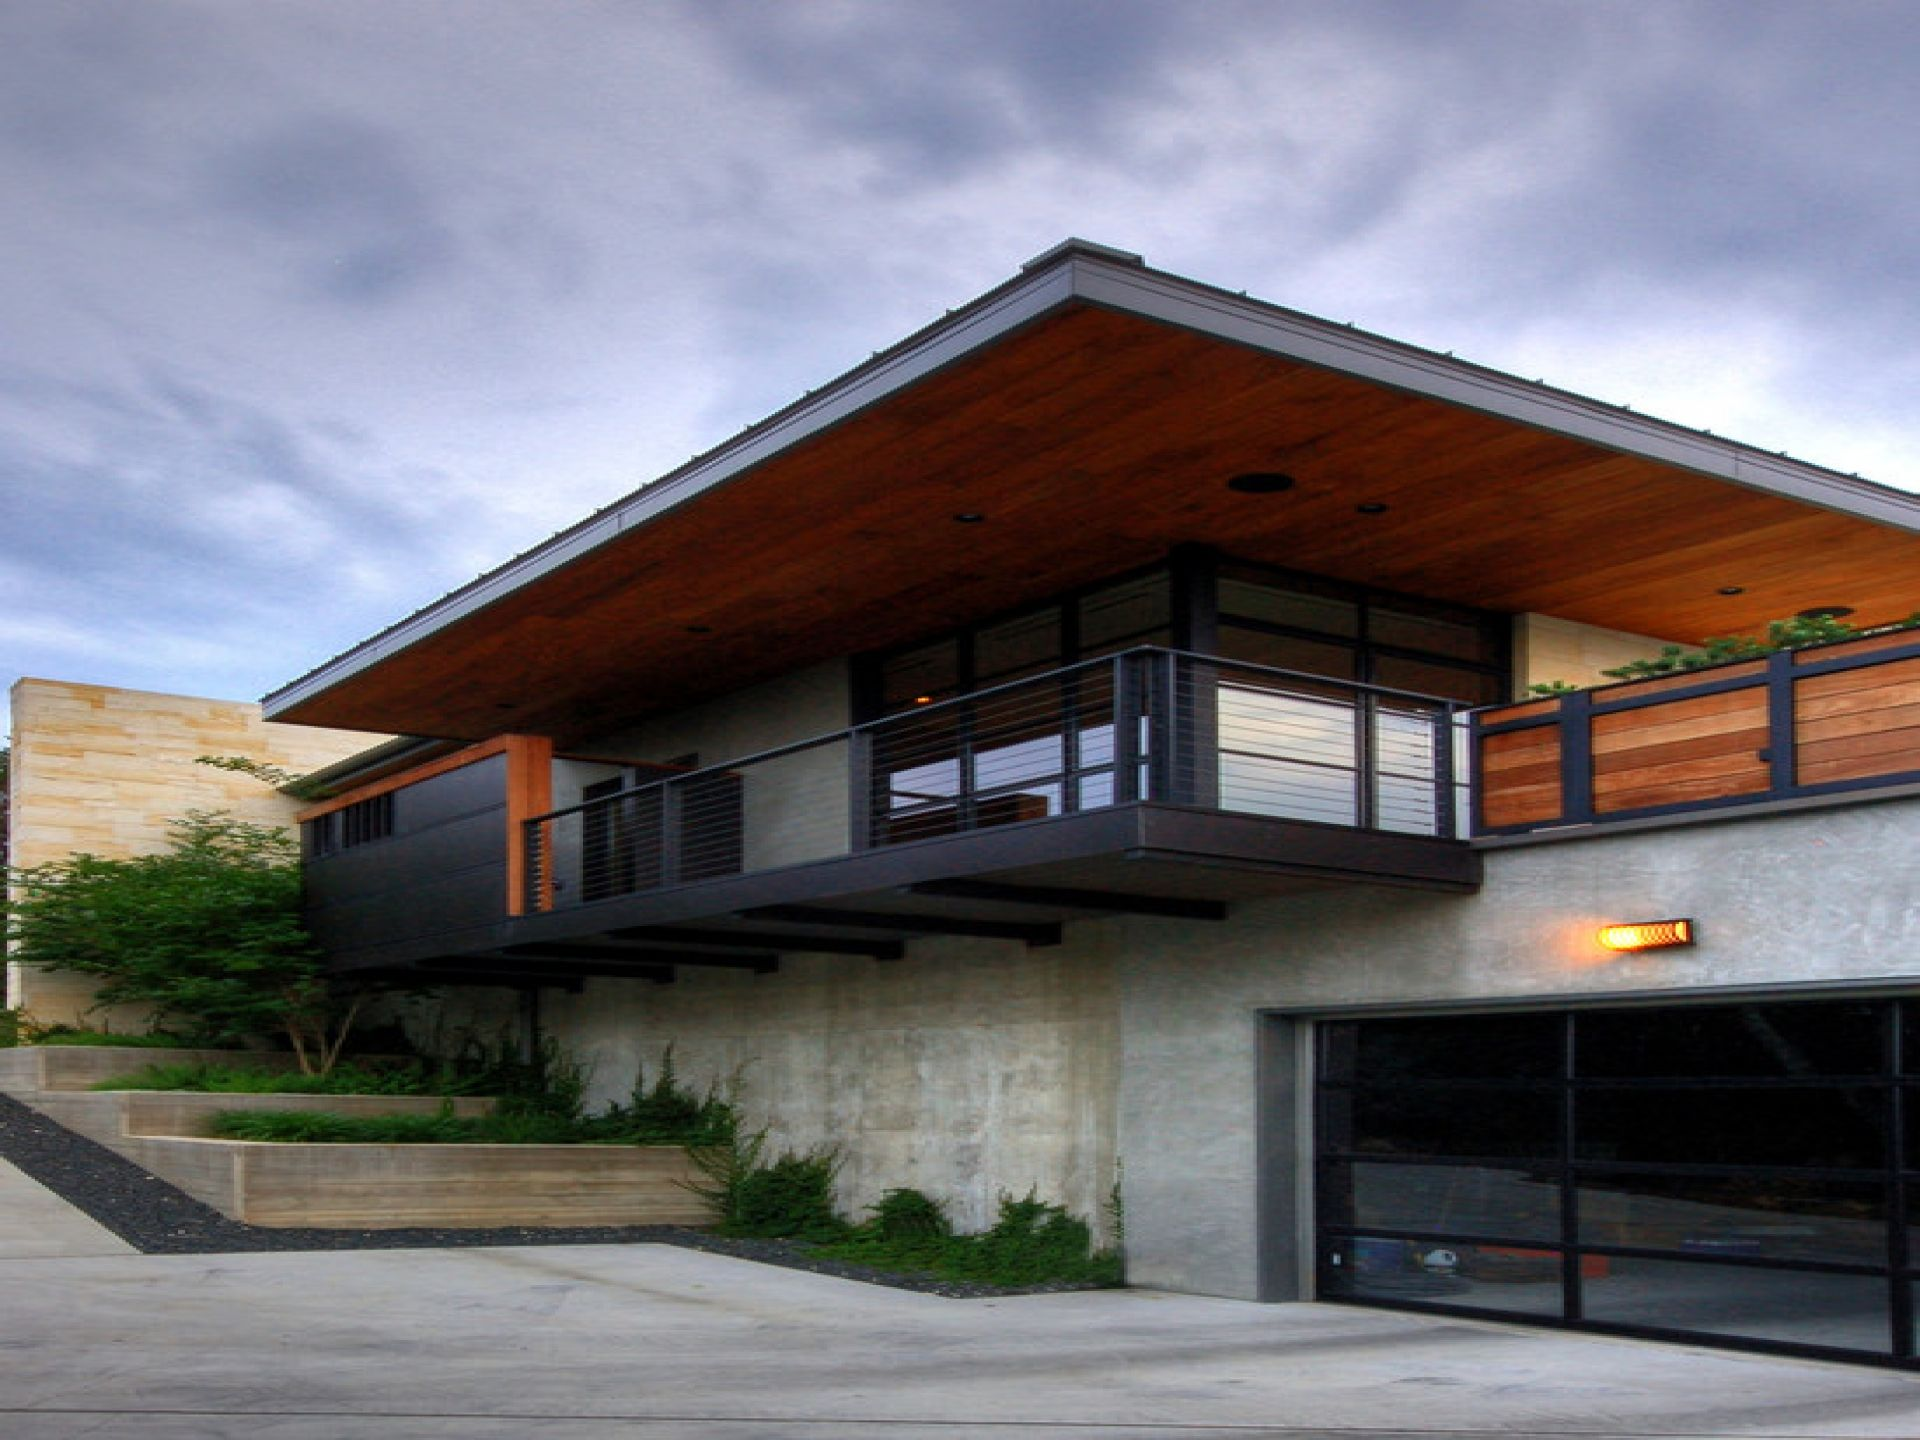 exciting images of modern houses. 1920x1440 exciting modern house exterior amazing underground parking